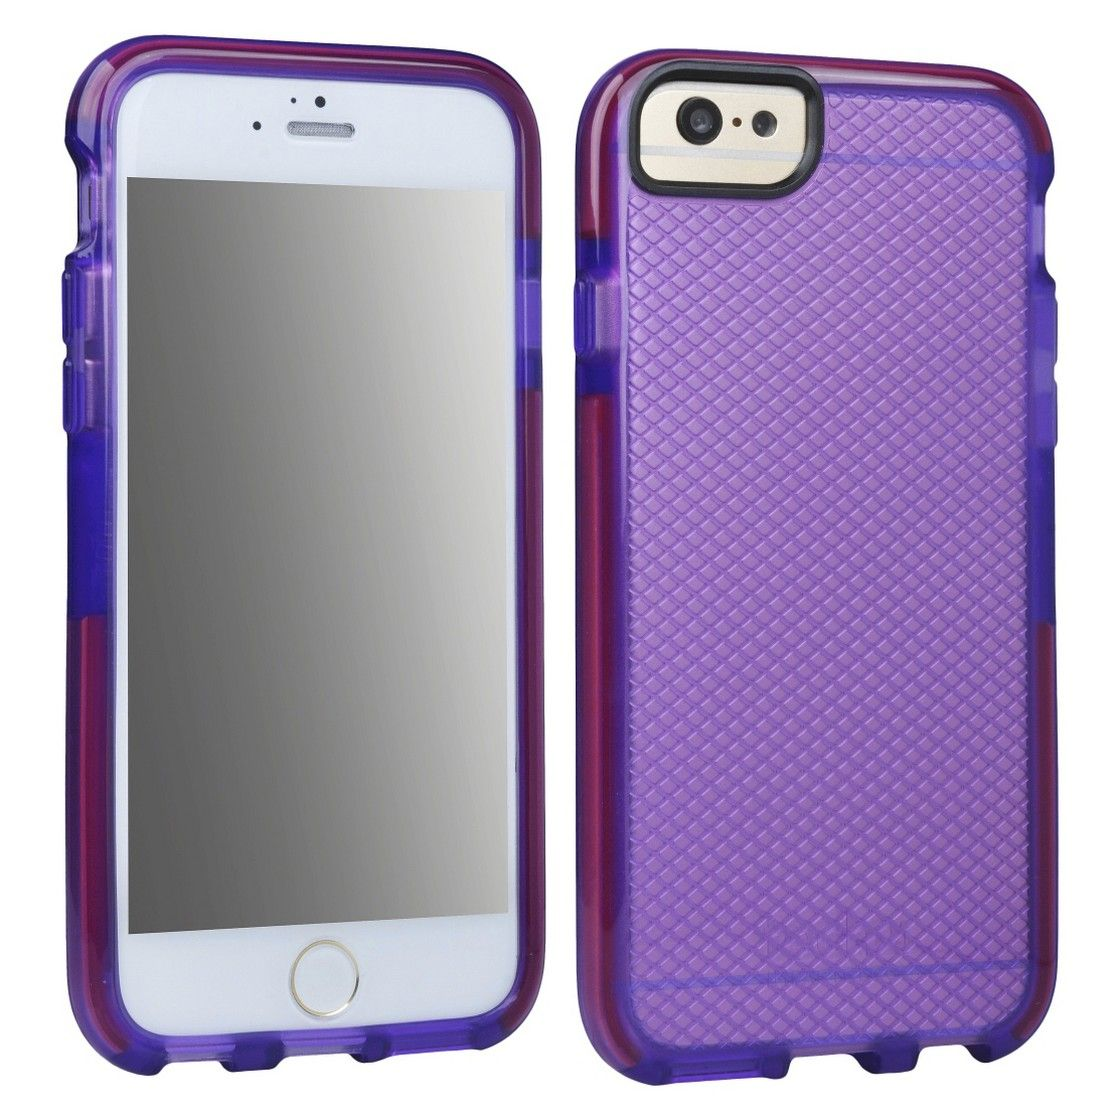 the best attitude 79f57 5e909 Tech21 Impact Check Cell Phone Case for iPhone 6 - Purple (98231VRP ...